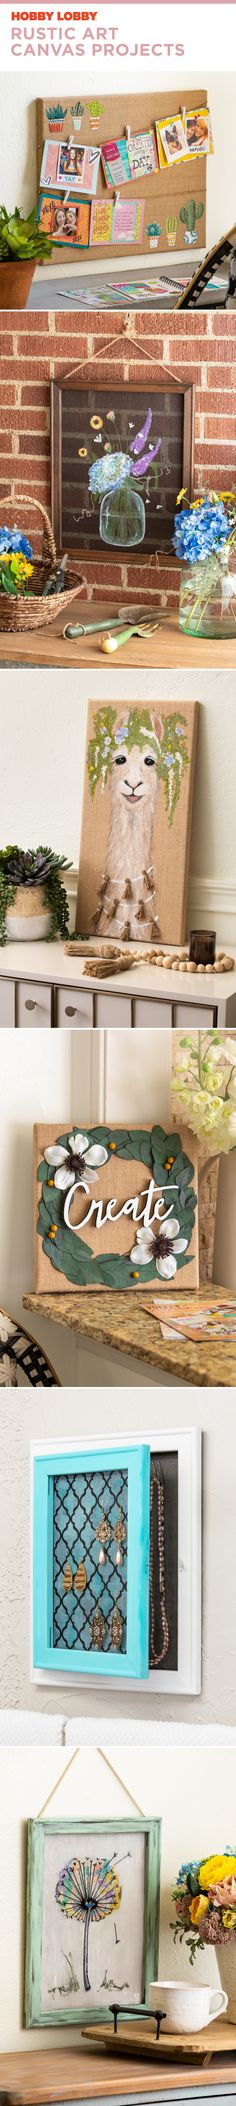 Rustic Art Canvas Projects